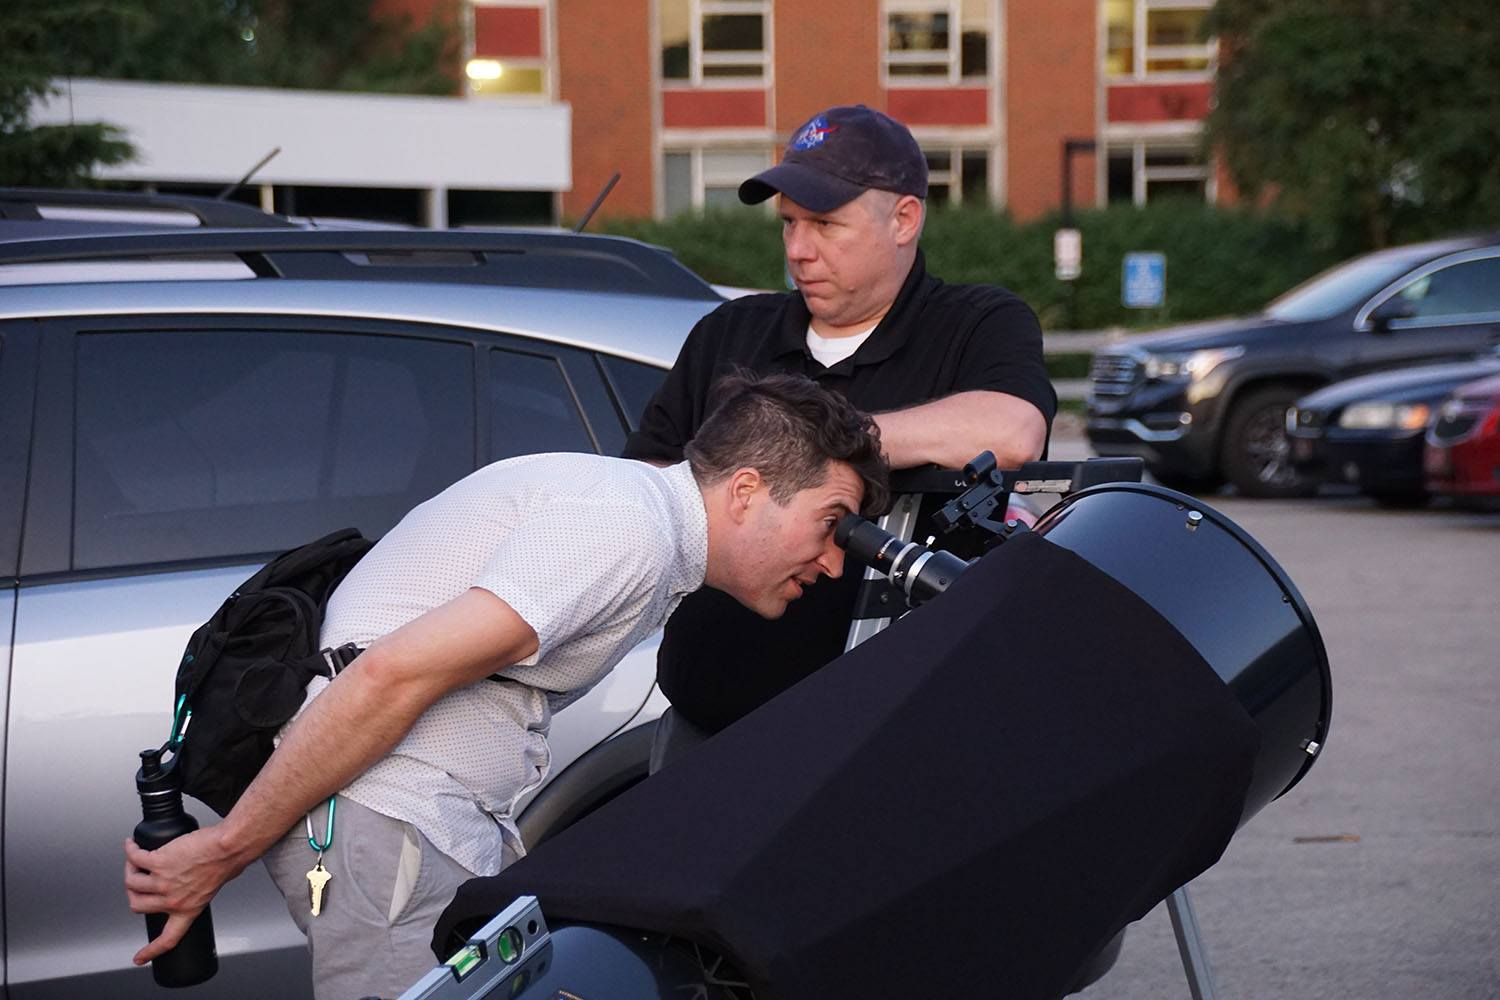 Star party at Rauch Planetarium, University of Louisville, Louisville, KY. Photo courtesy of Duke Marsh, July 2019.